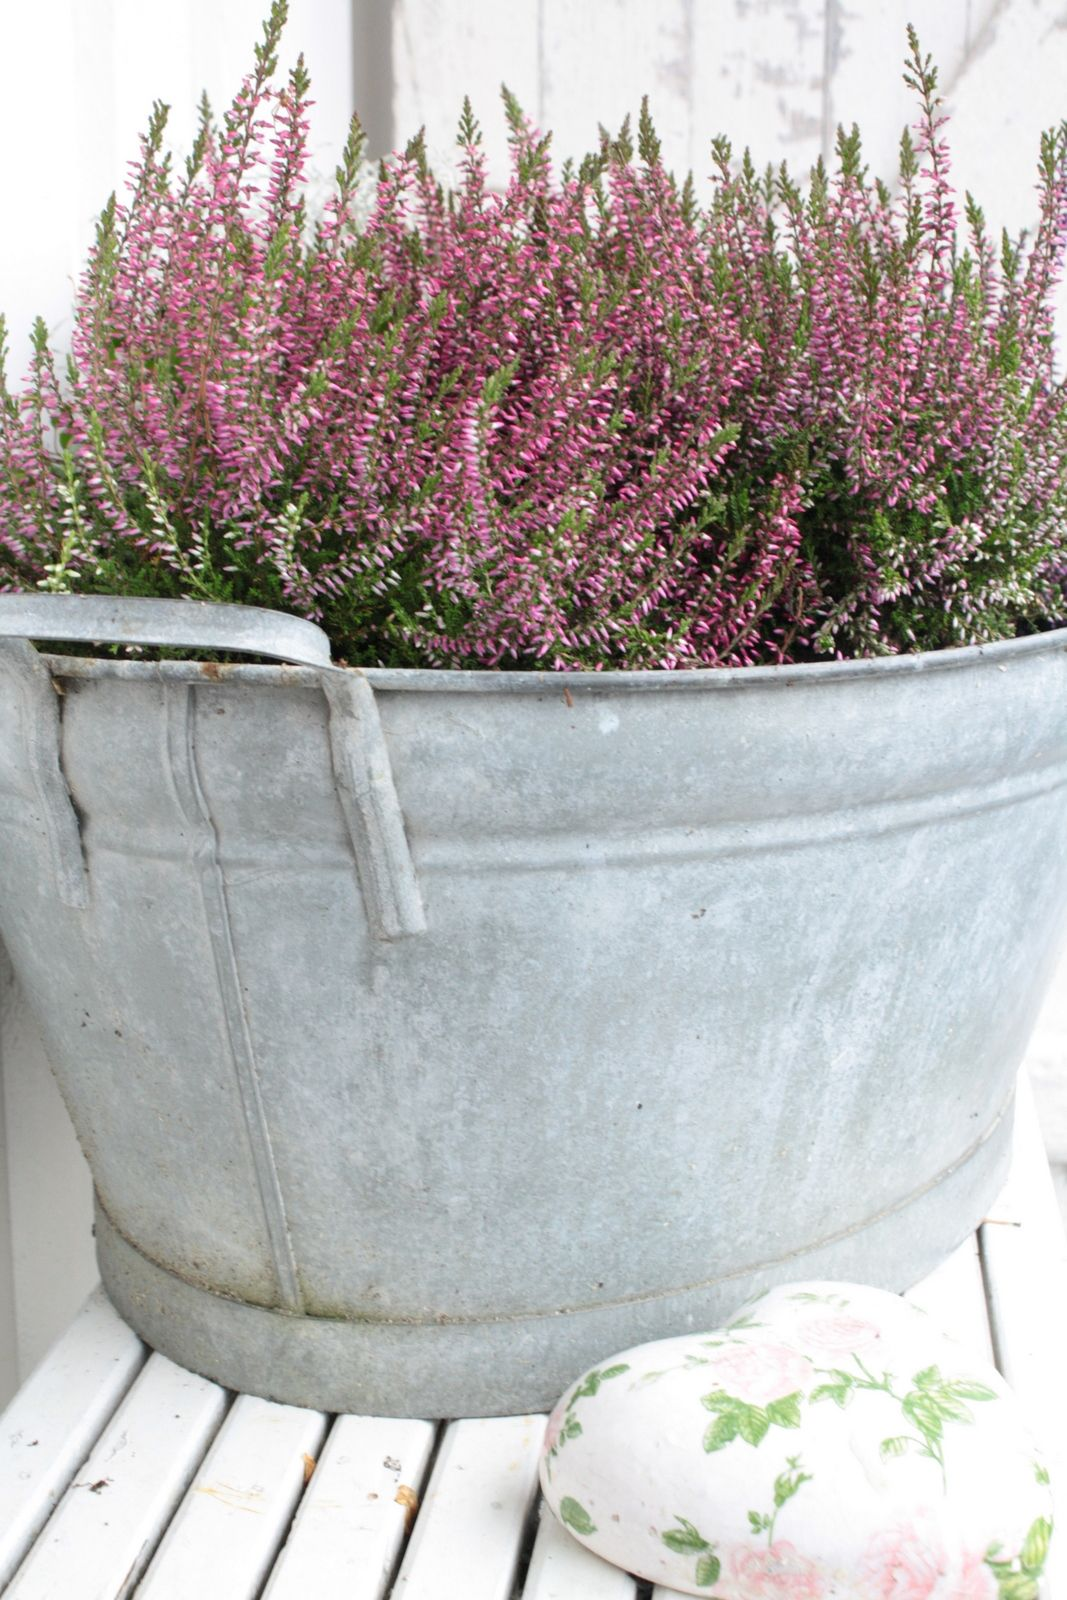 Pin By Meghan Orr On For The Home Garden Containers Tin Bath Garden Inspiration